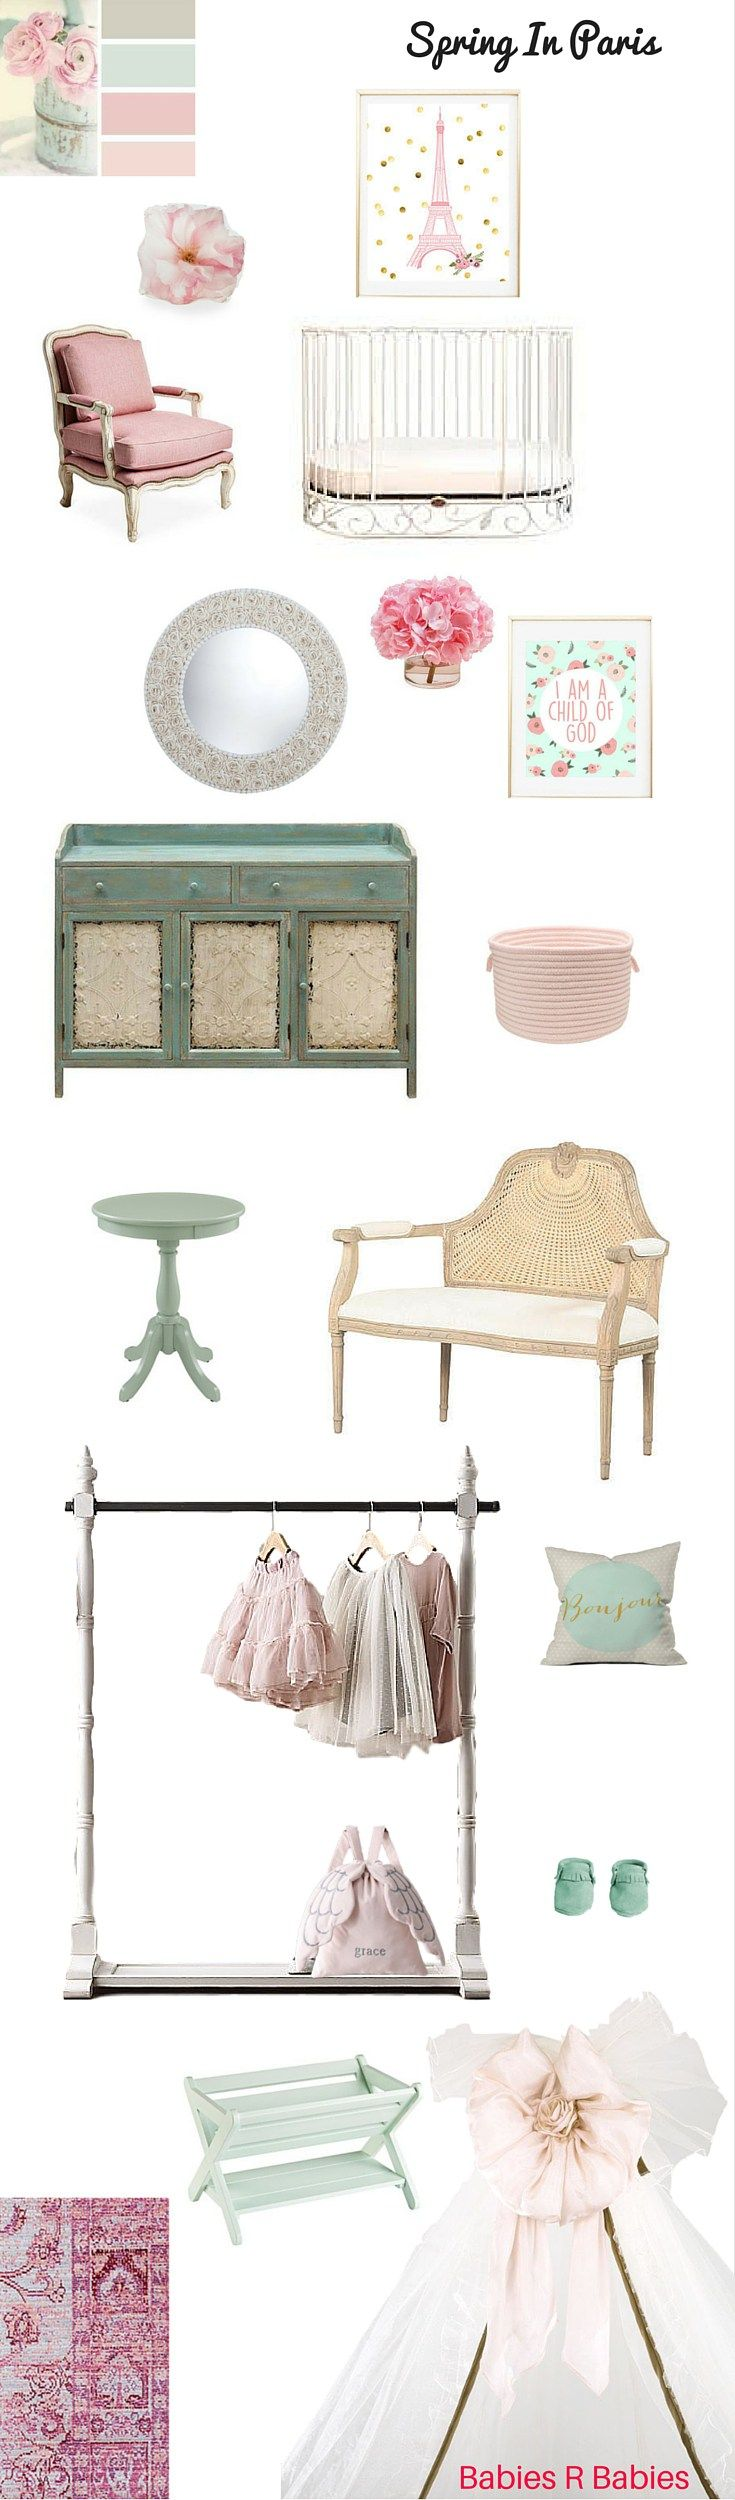 Spring in Paris.A baby nursery design inspired by the allure of spring time in Paris.#SpringinParis